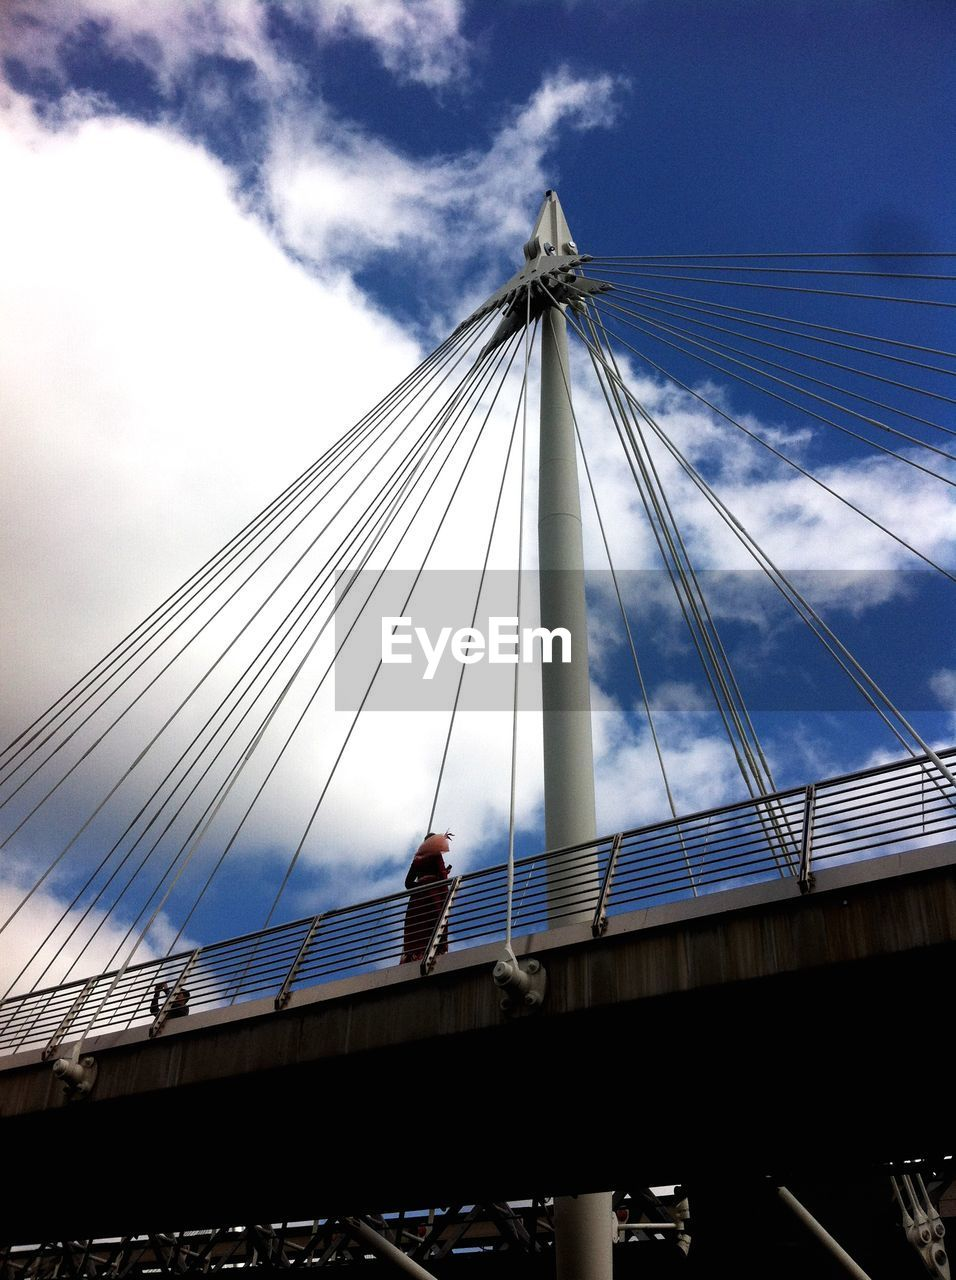 bridge - man made structure, connection, engineering, suspension bridge, architecture, sky, built structure, bridge, low angle view, cloud - sky, transportation, outdoors, day, city, cable, men, real people, people